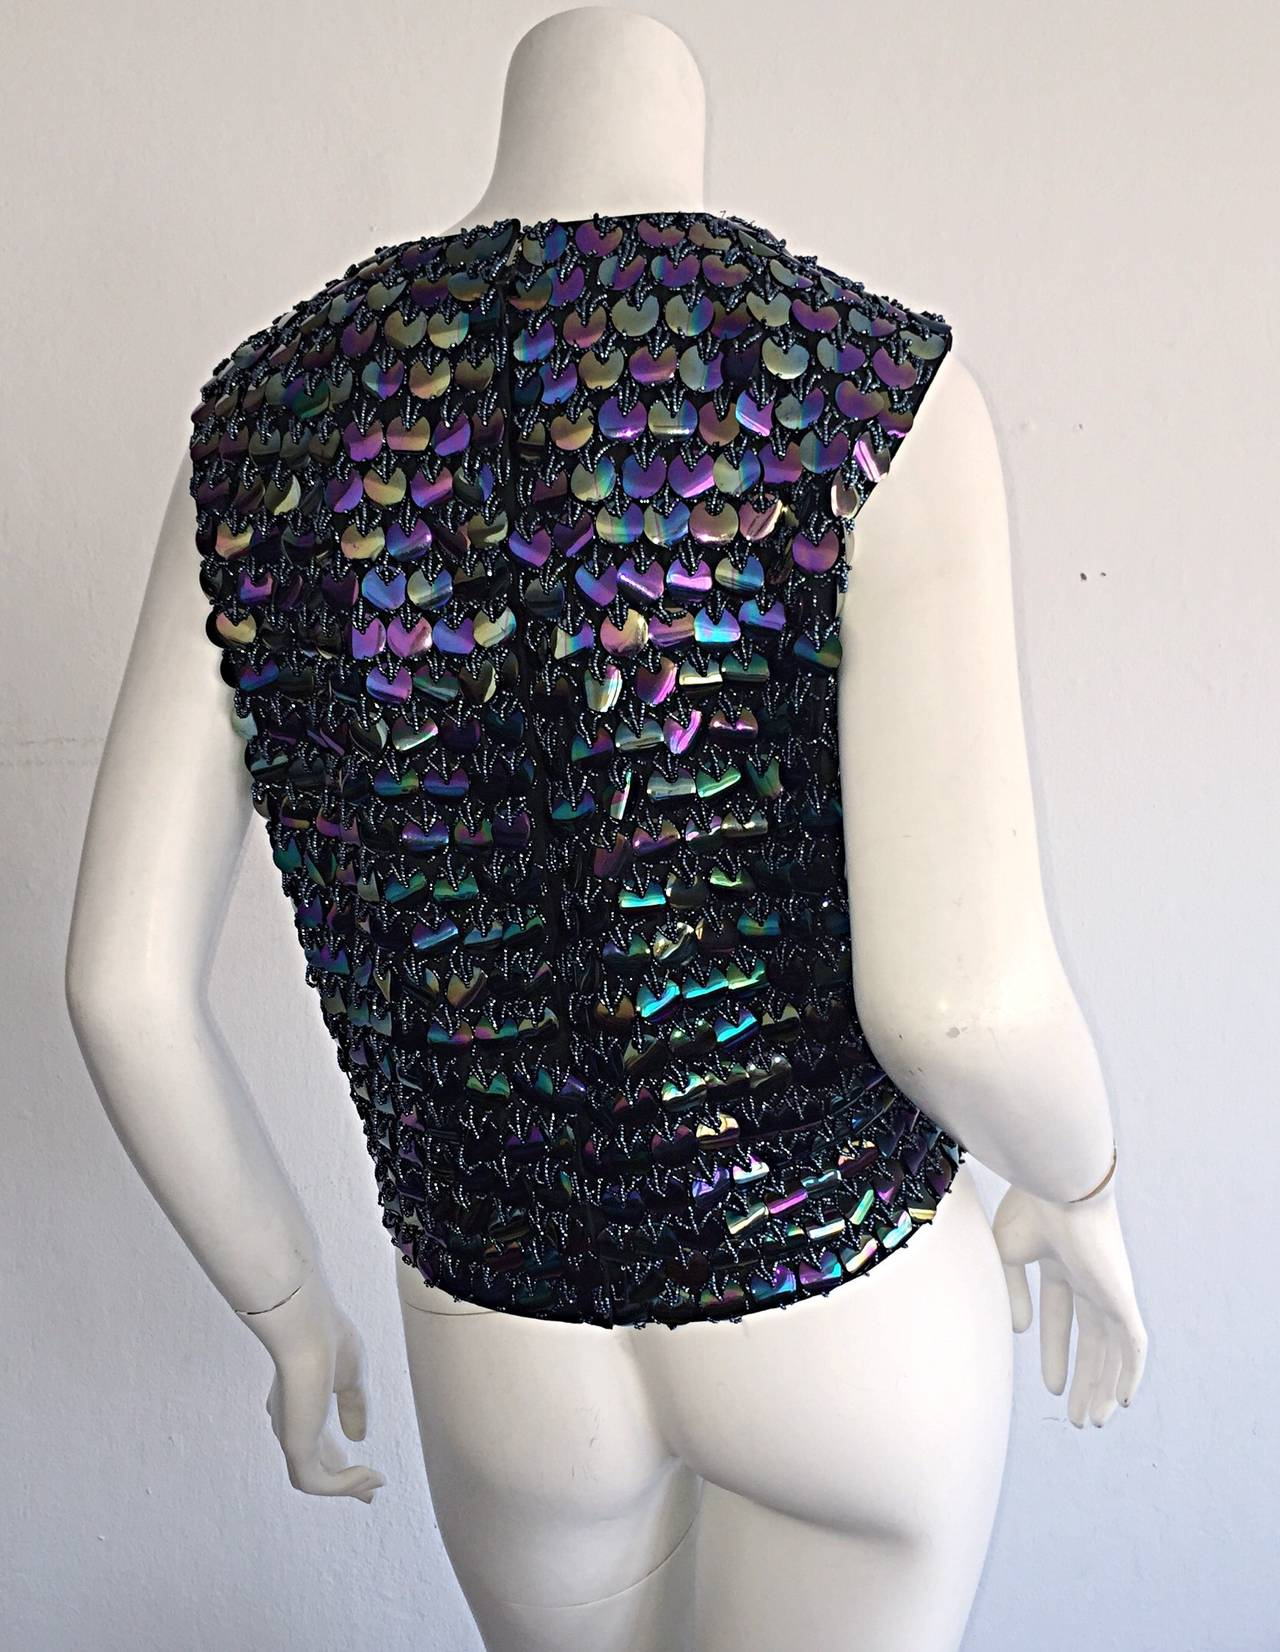 Fabulous 1950s Gene Shelly's Fully Beaded Iridescent Paillettes Silk Blouse Top 5